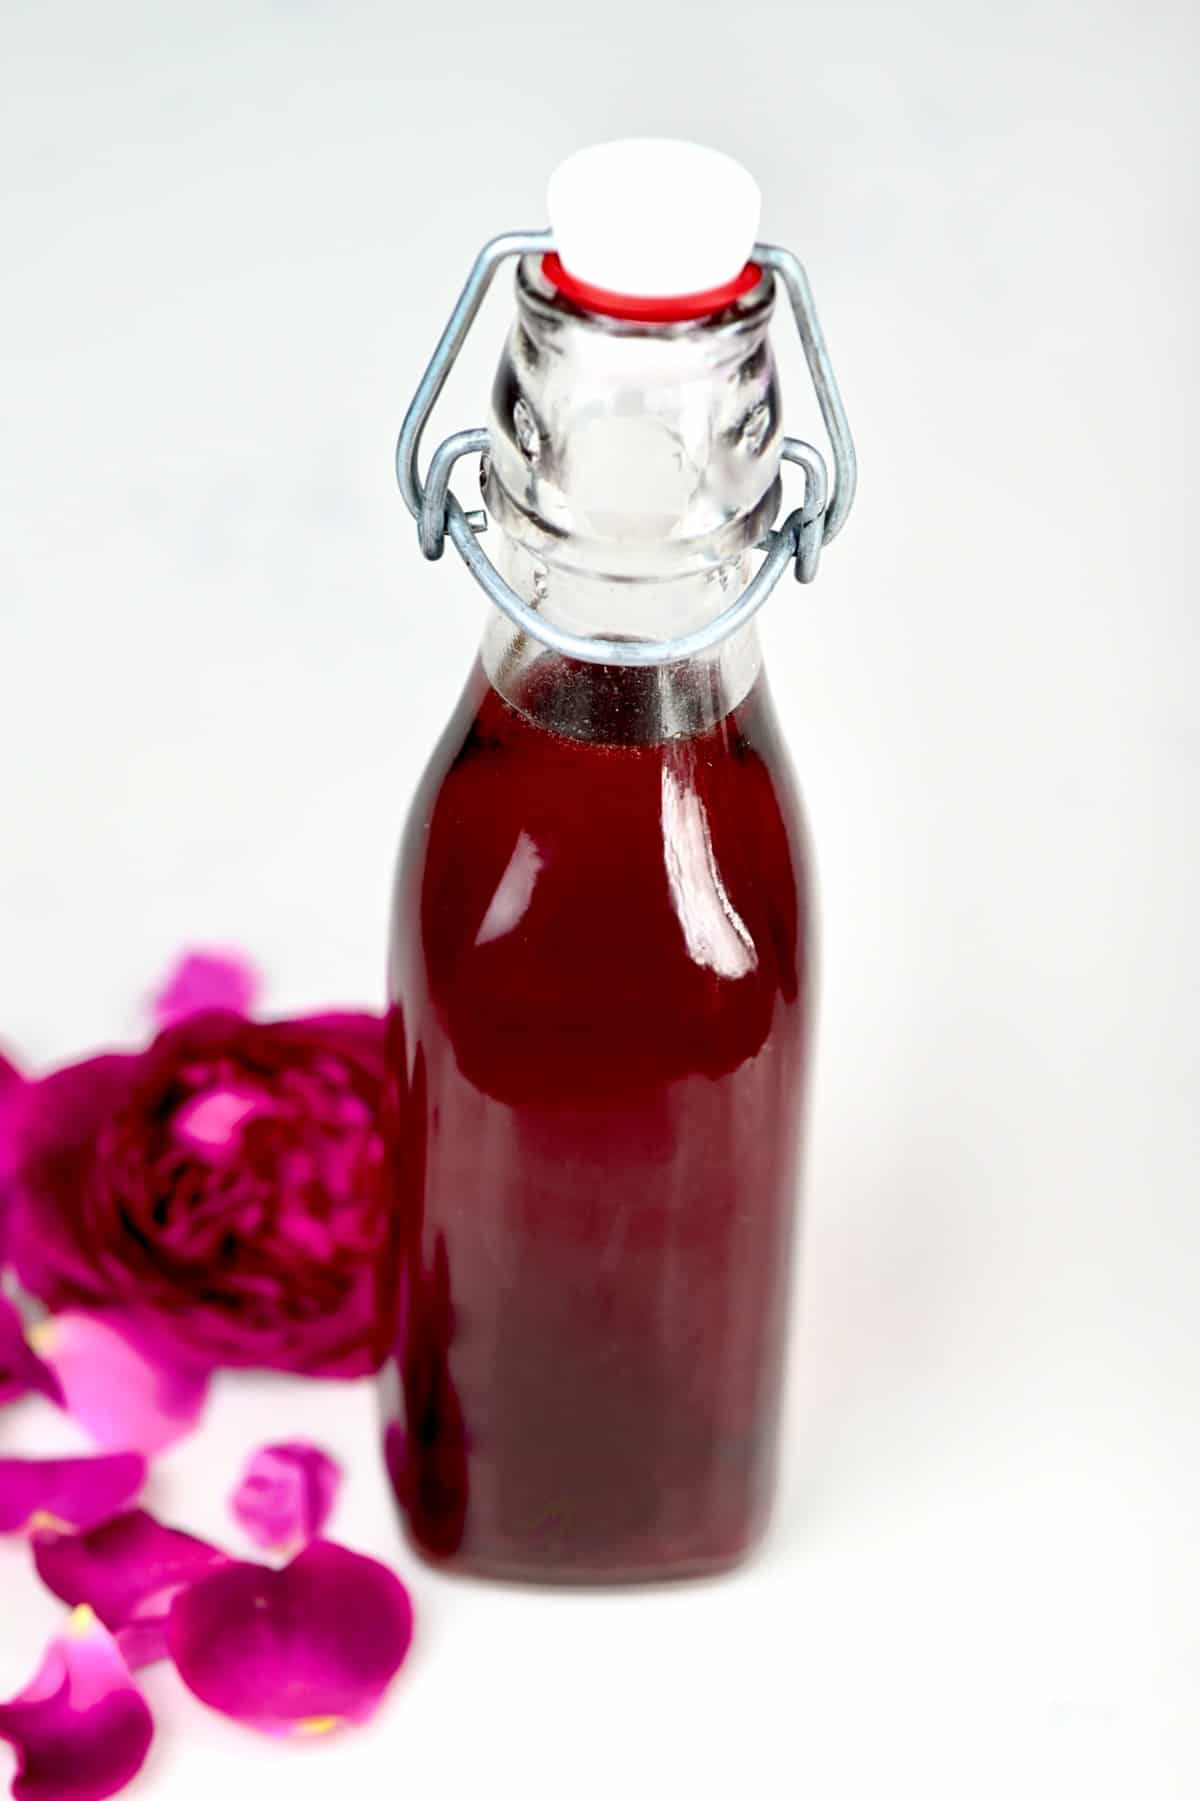 Rose Extract in a glass bottle with fresh roses in the side